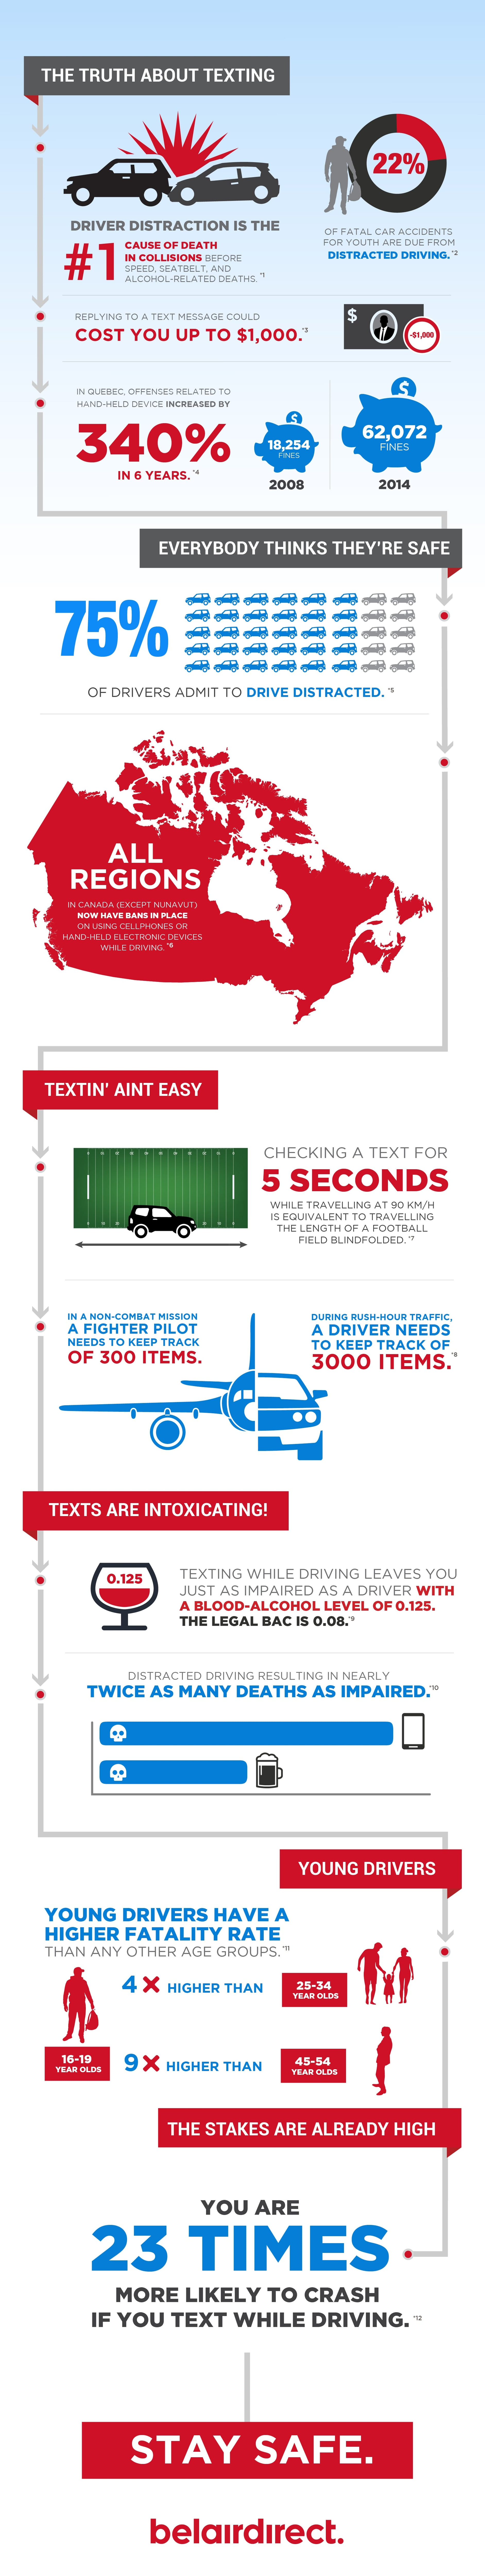 Distracted Driving Statistics, an infographic